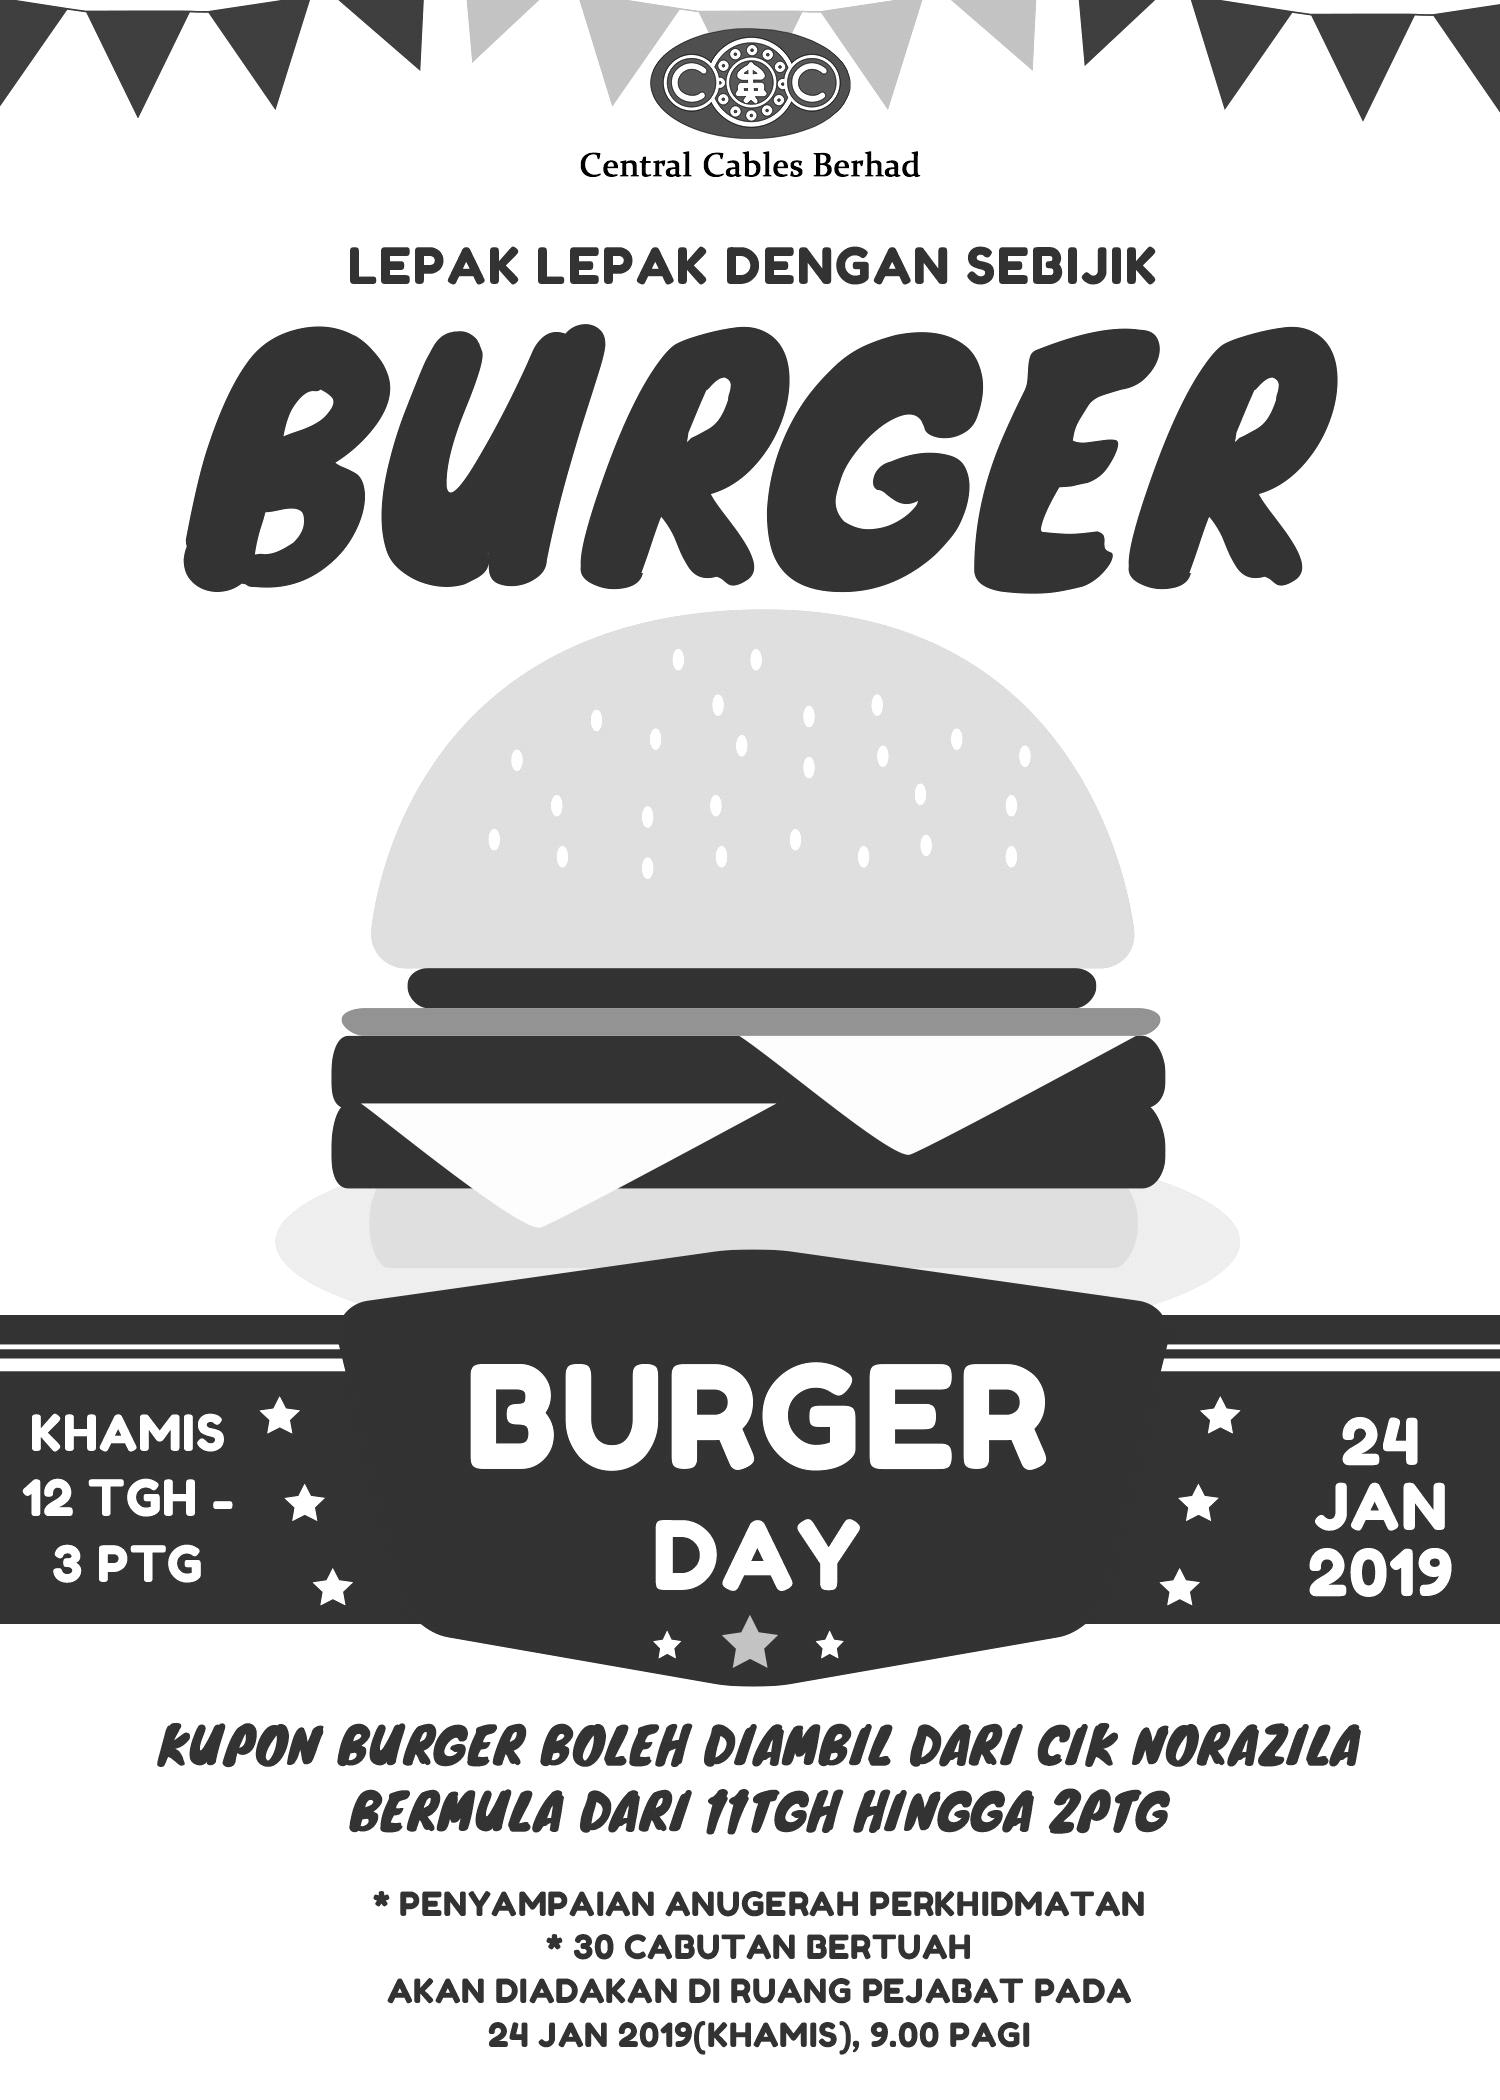 Central Cables Berhad – Burger Day